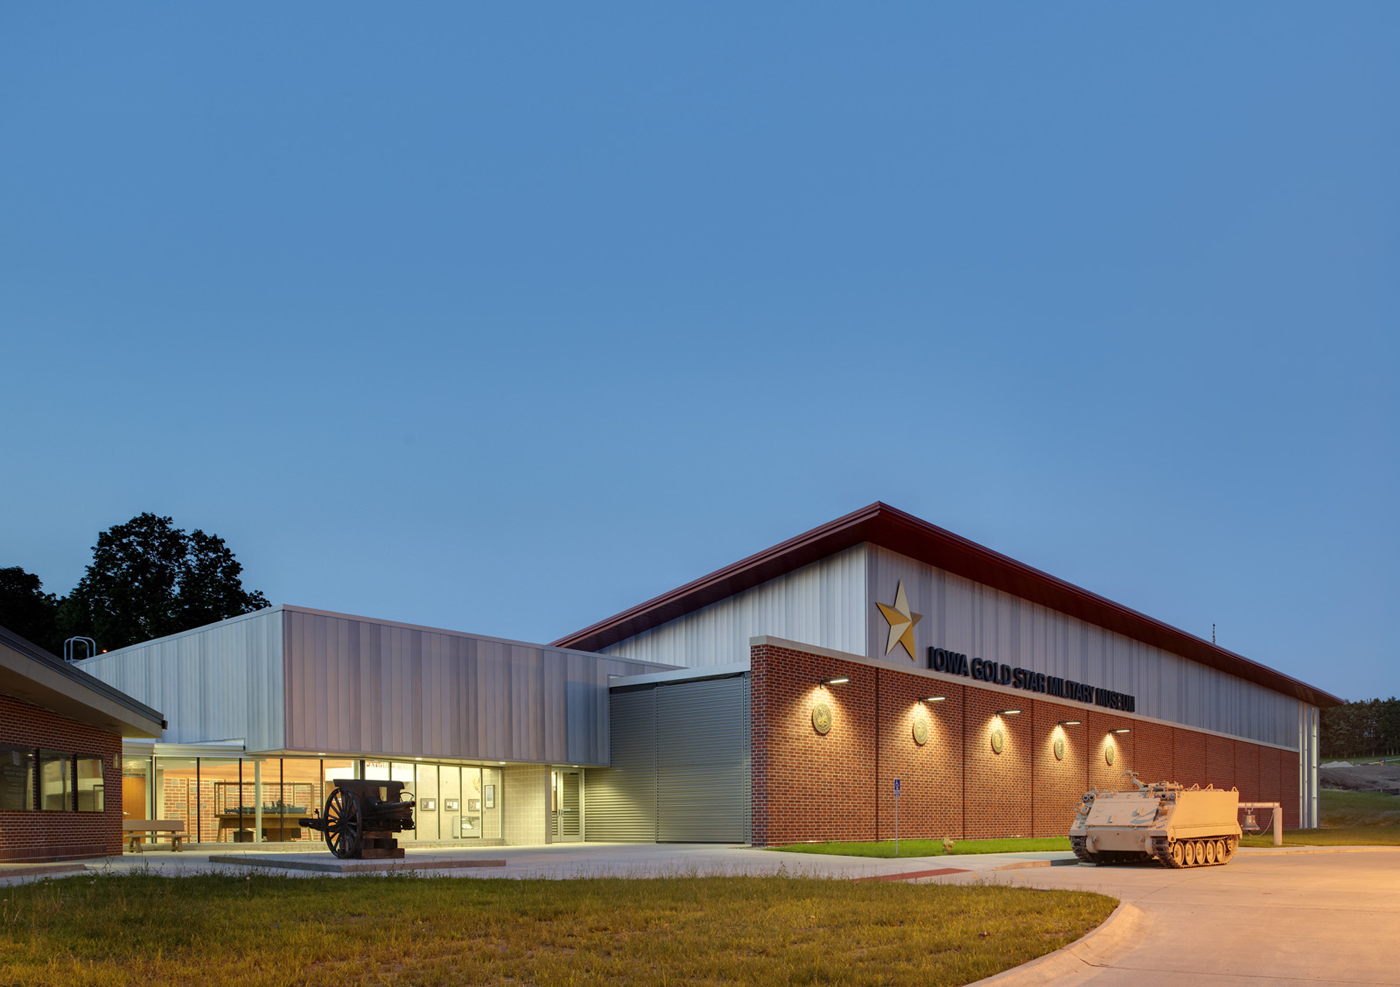 Architectural Steel Garages : Ask studio iowa gold star military museum